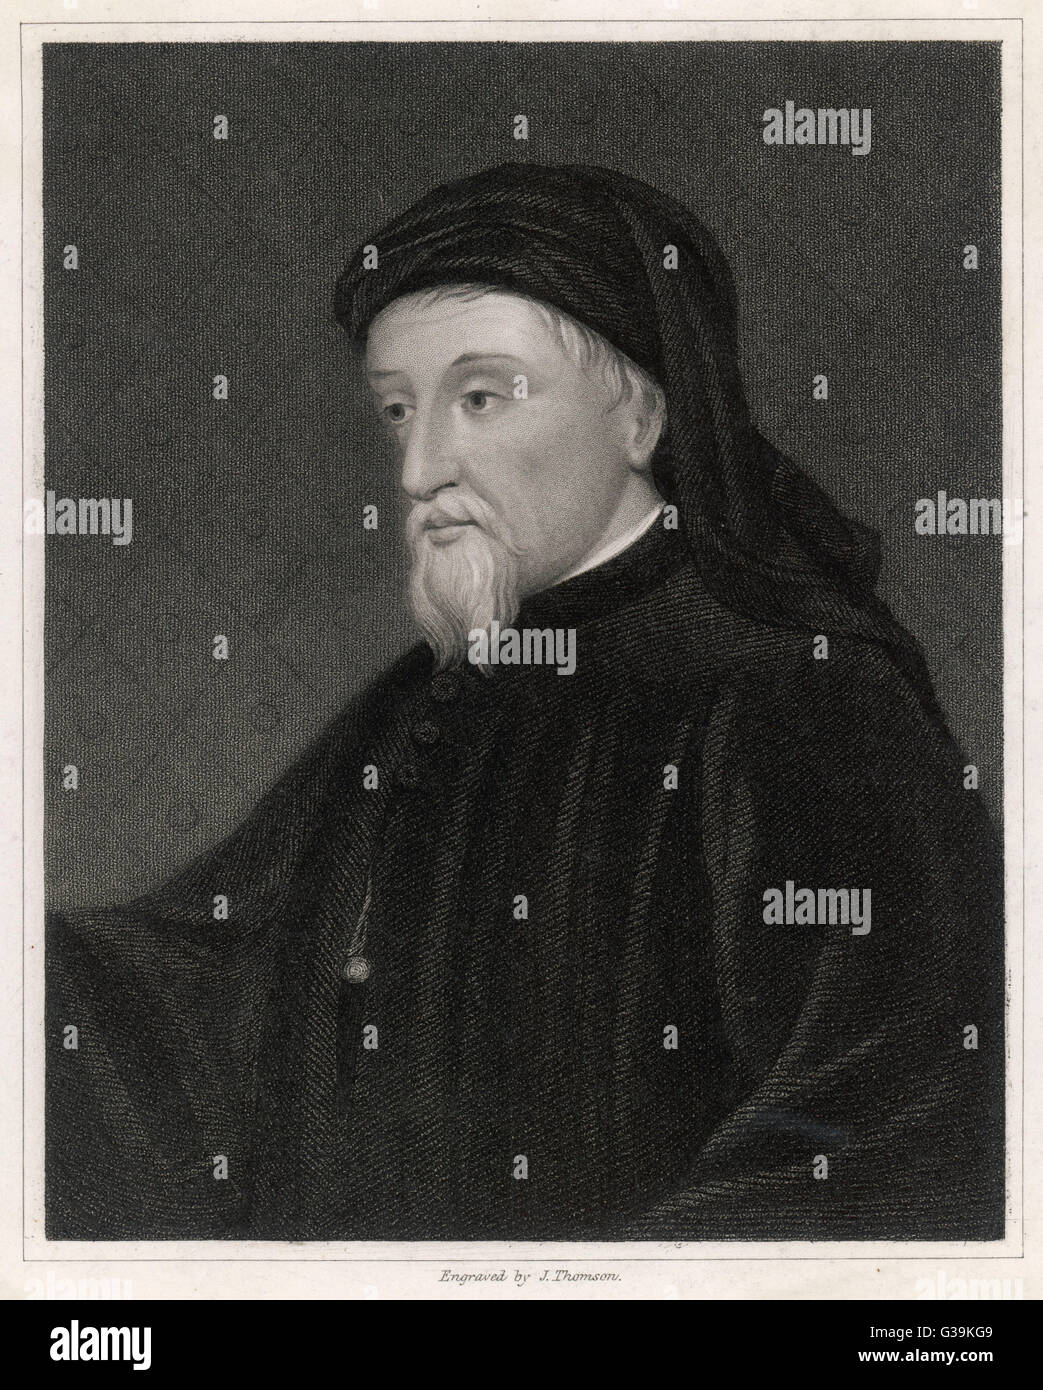 GEOFFREY CHAUCER  English poet, writer of The Canterbury Tales       Date: 1340 - 1400 - Stock Image